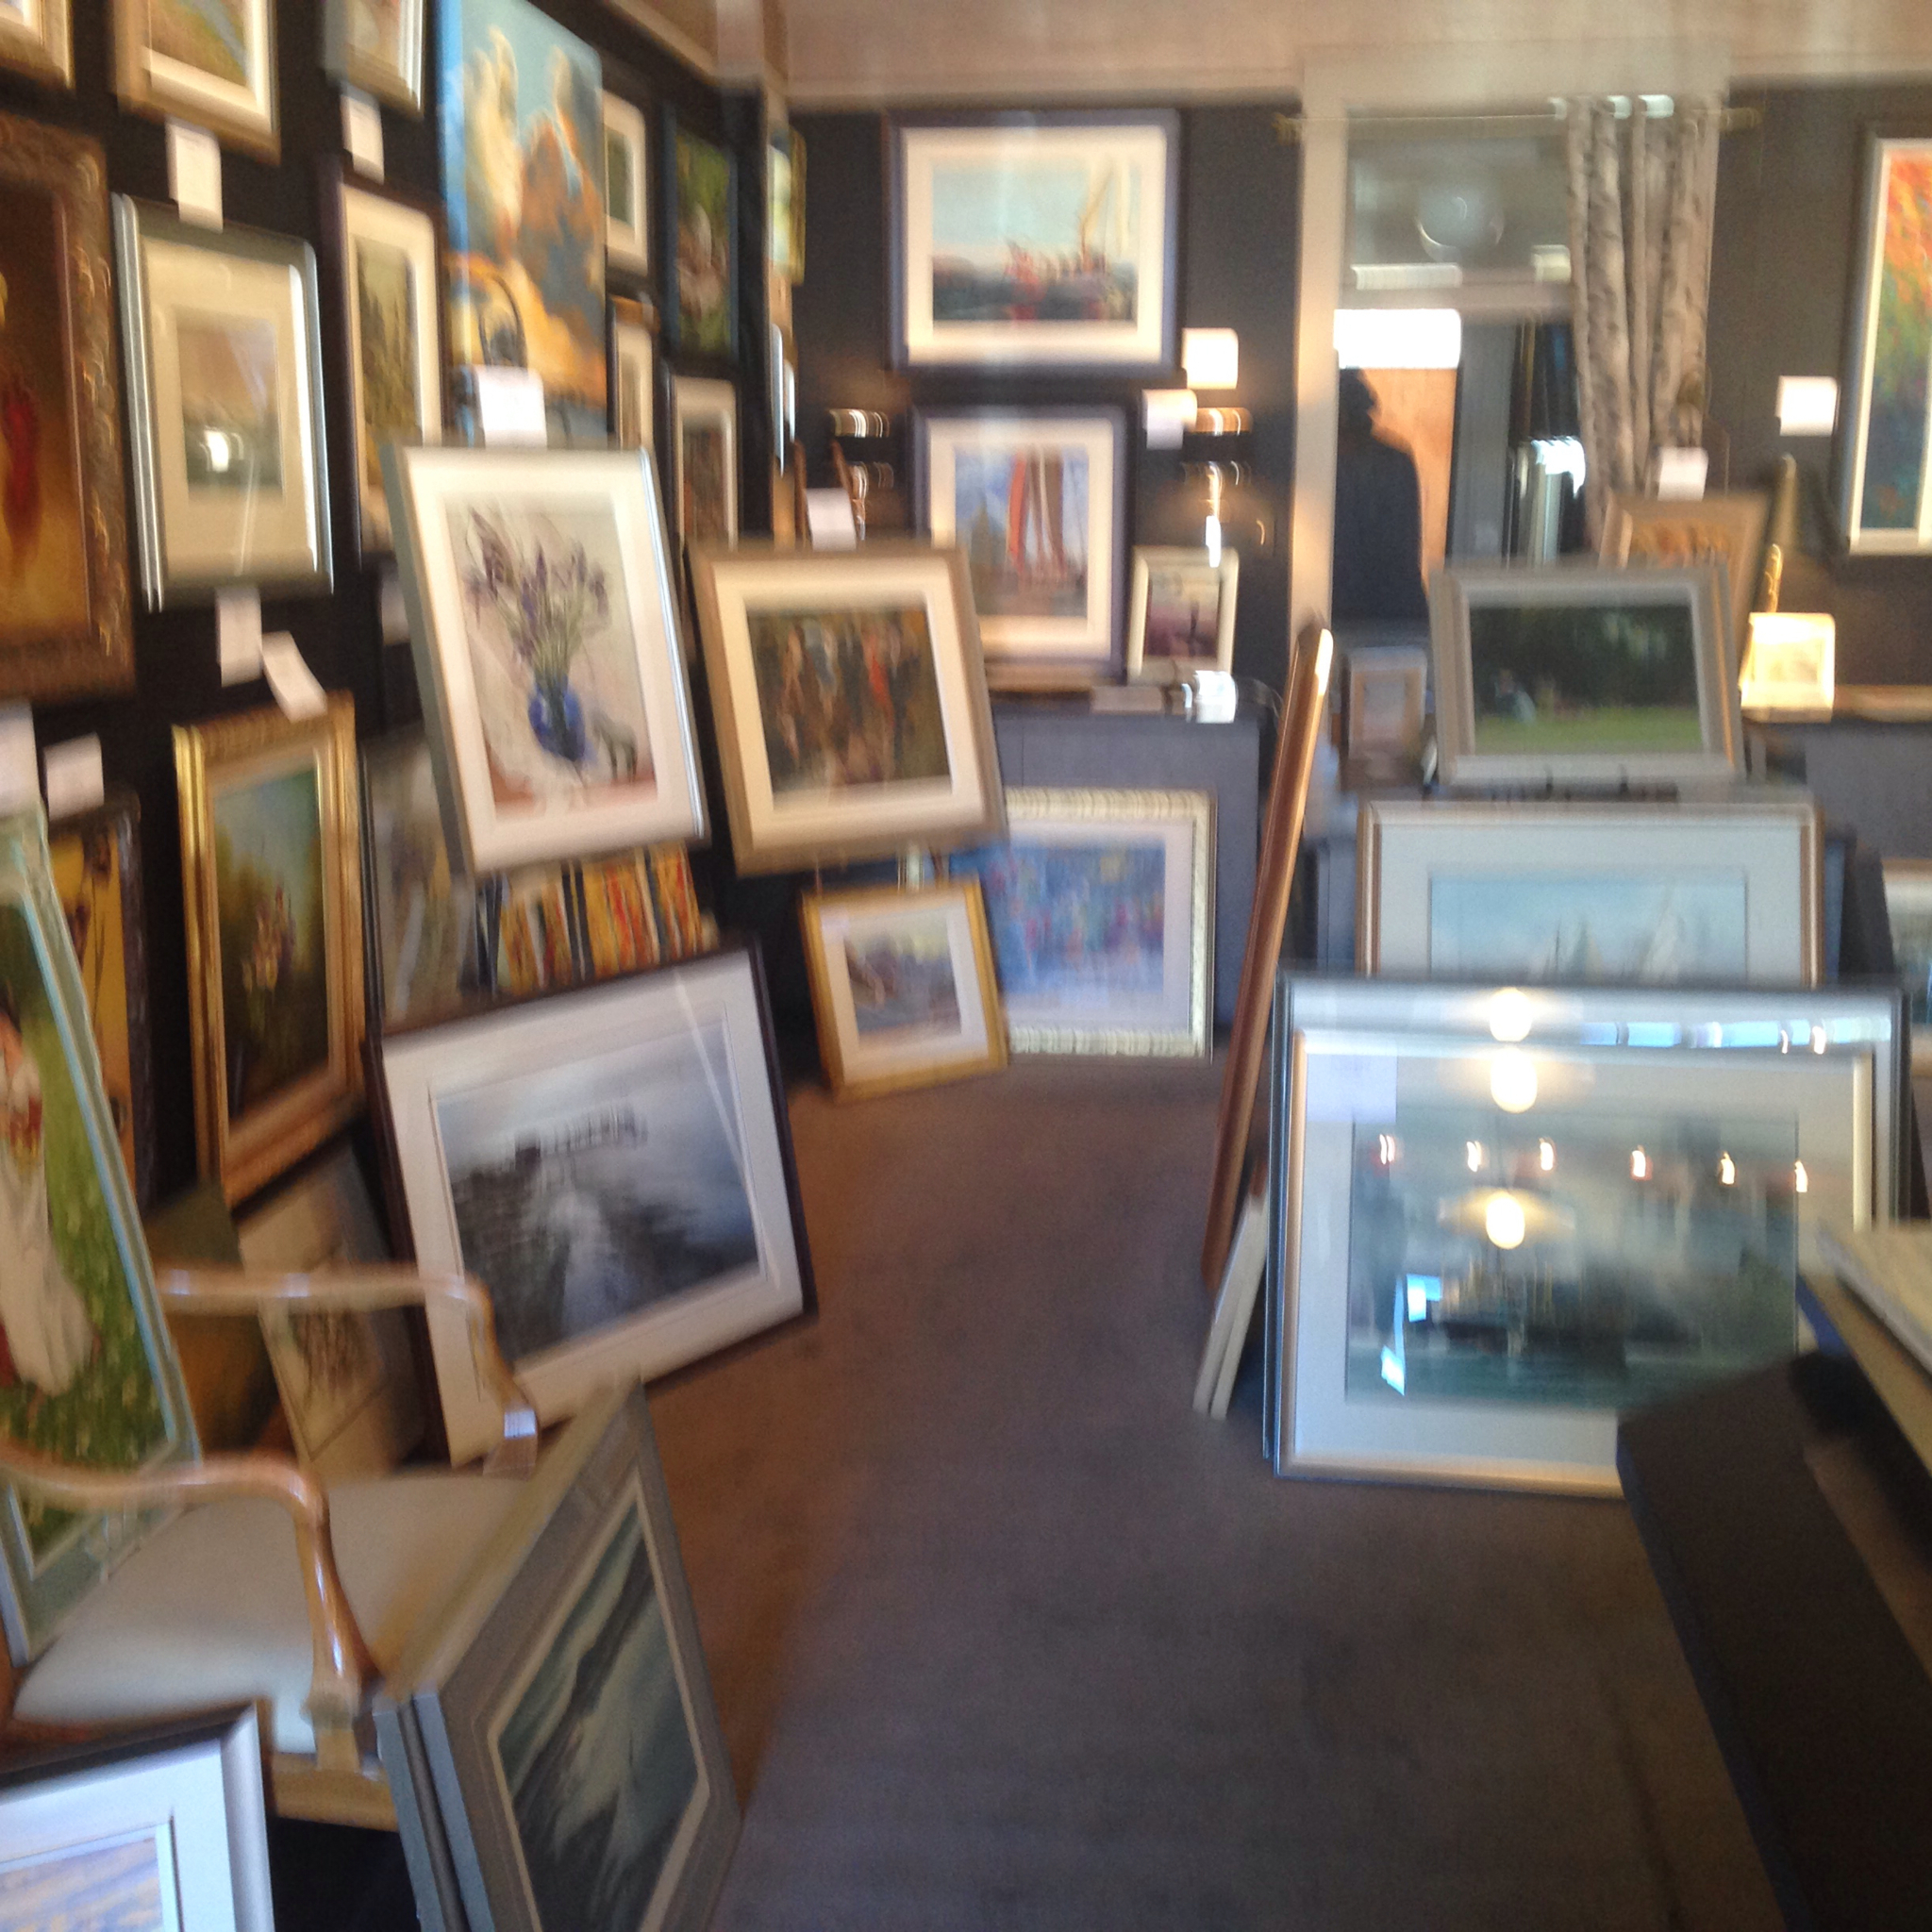 The Gallery In The Oak Bay Village in Victoria